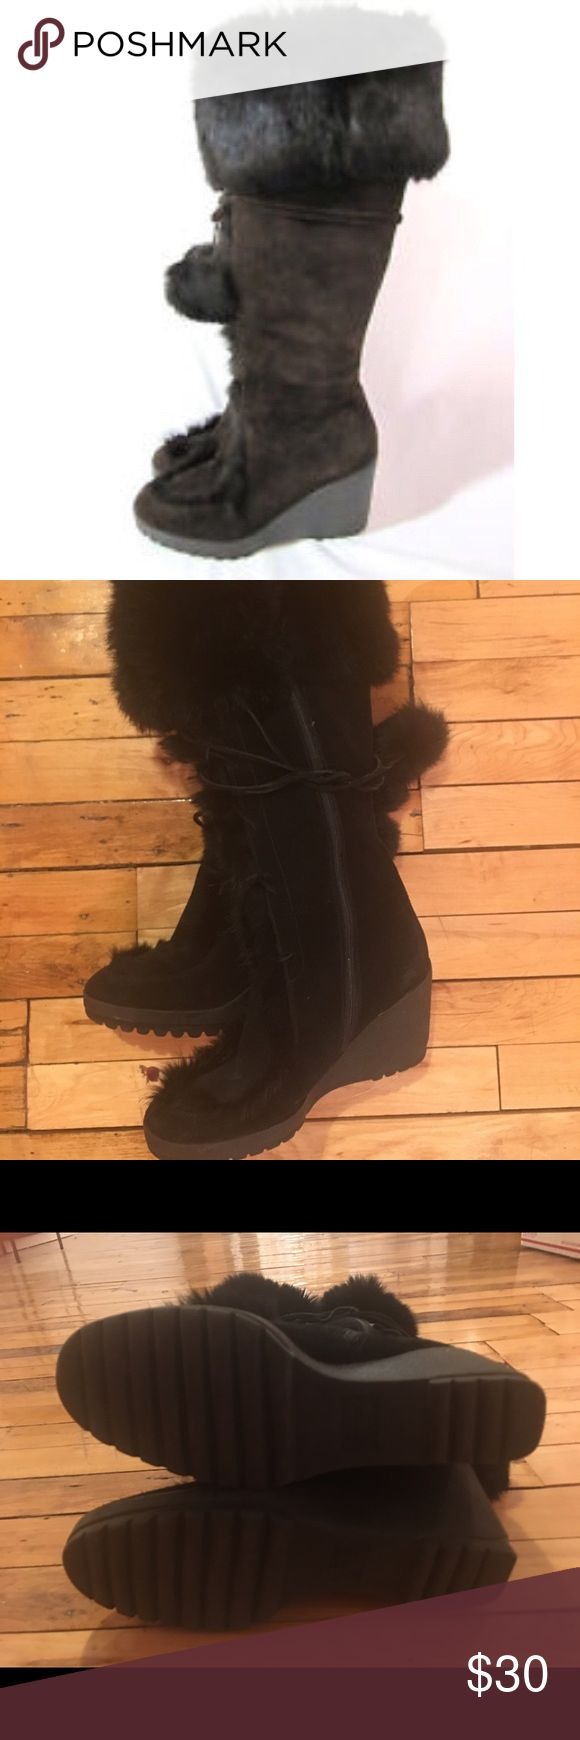 Pom Pom Coach boots with rabbit fur Pom pom Coach boots with rabbit fur. One pom pom is missing, although this is not noticeable when wearing. Coach Shoes Heeled Boots